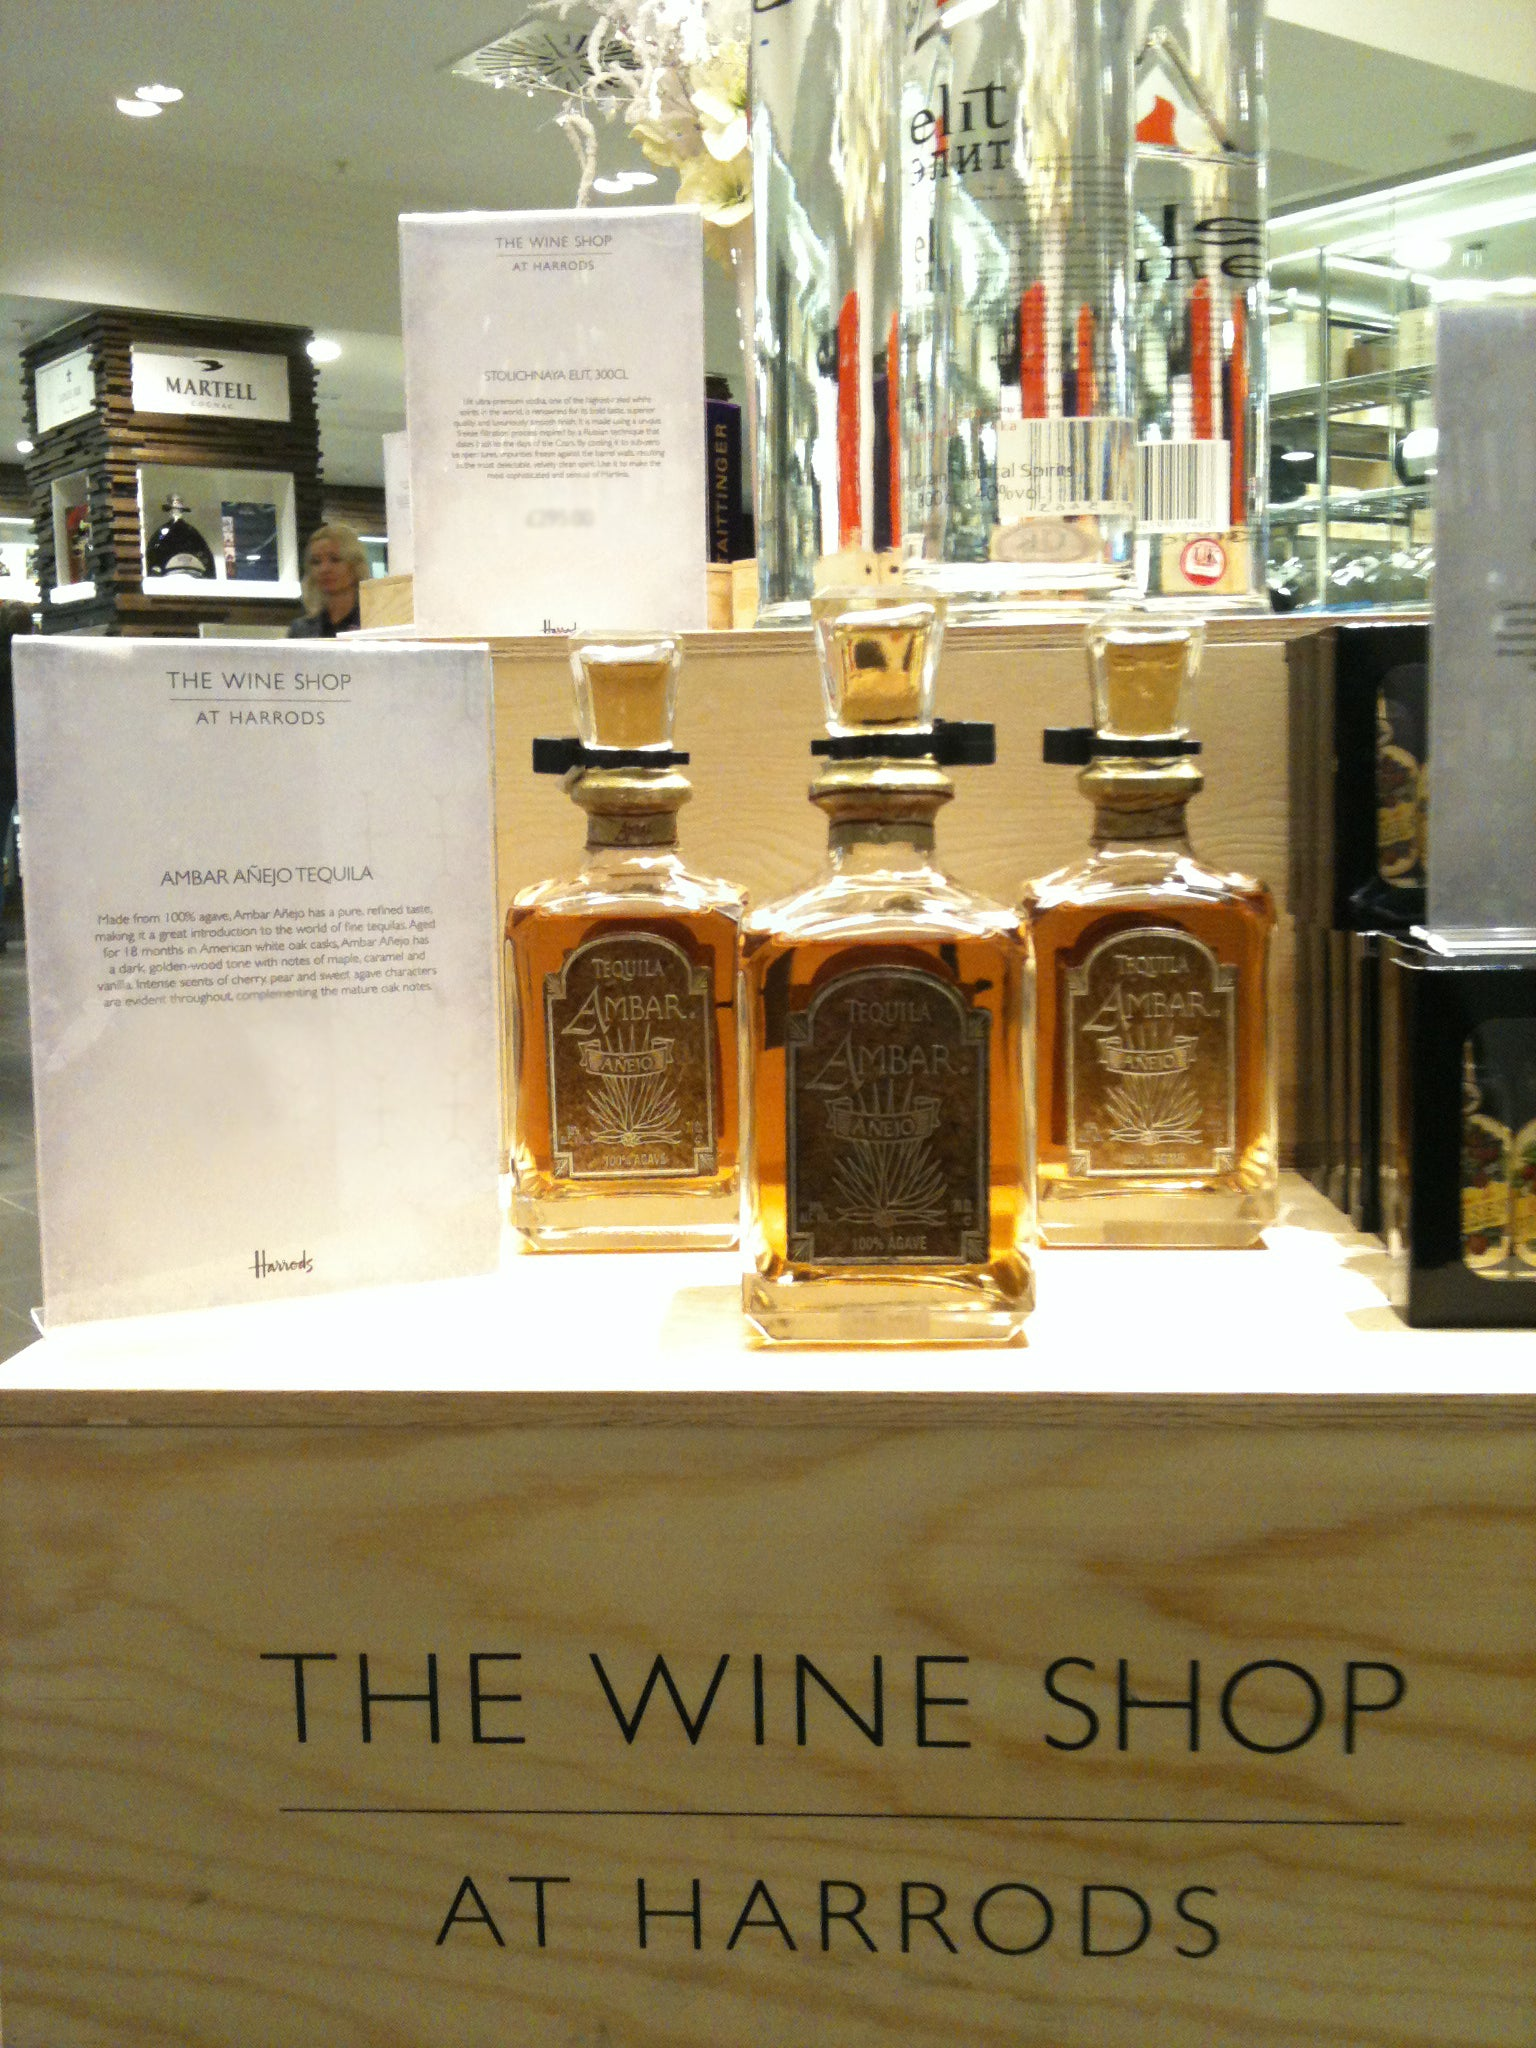 Tequila Ambar Anejo in Harrods